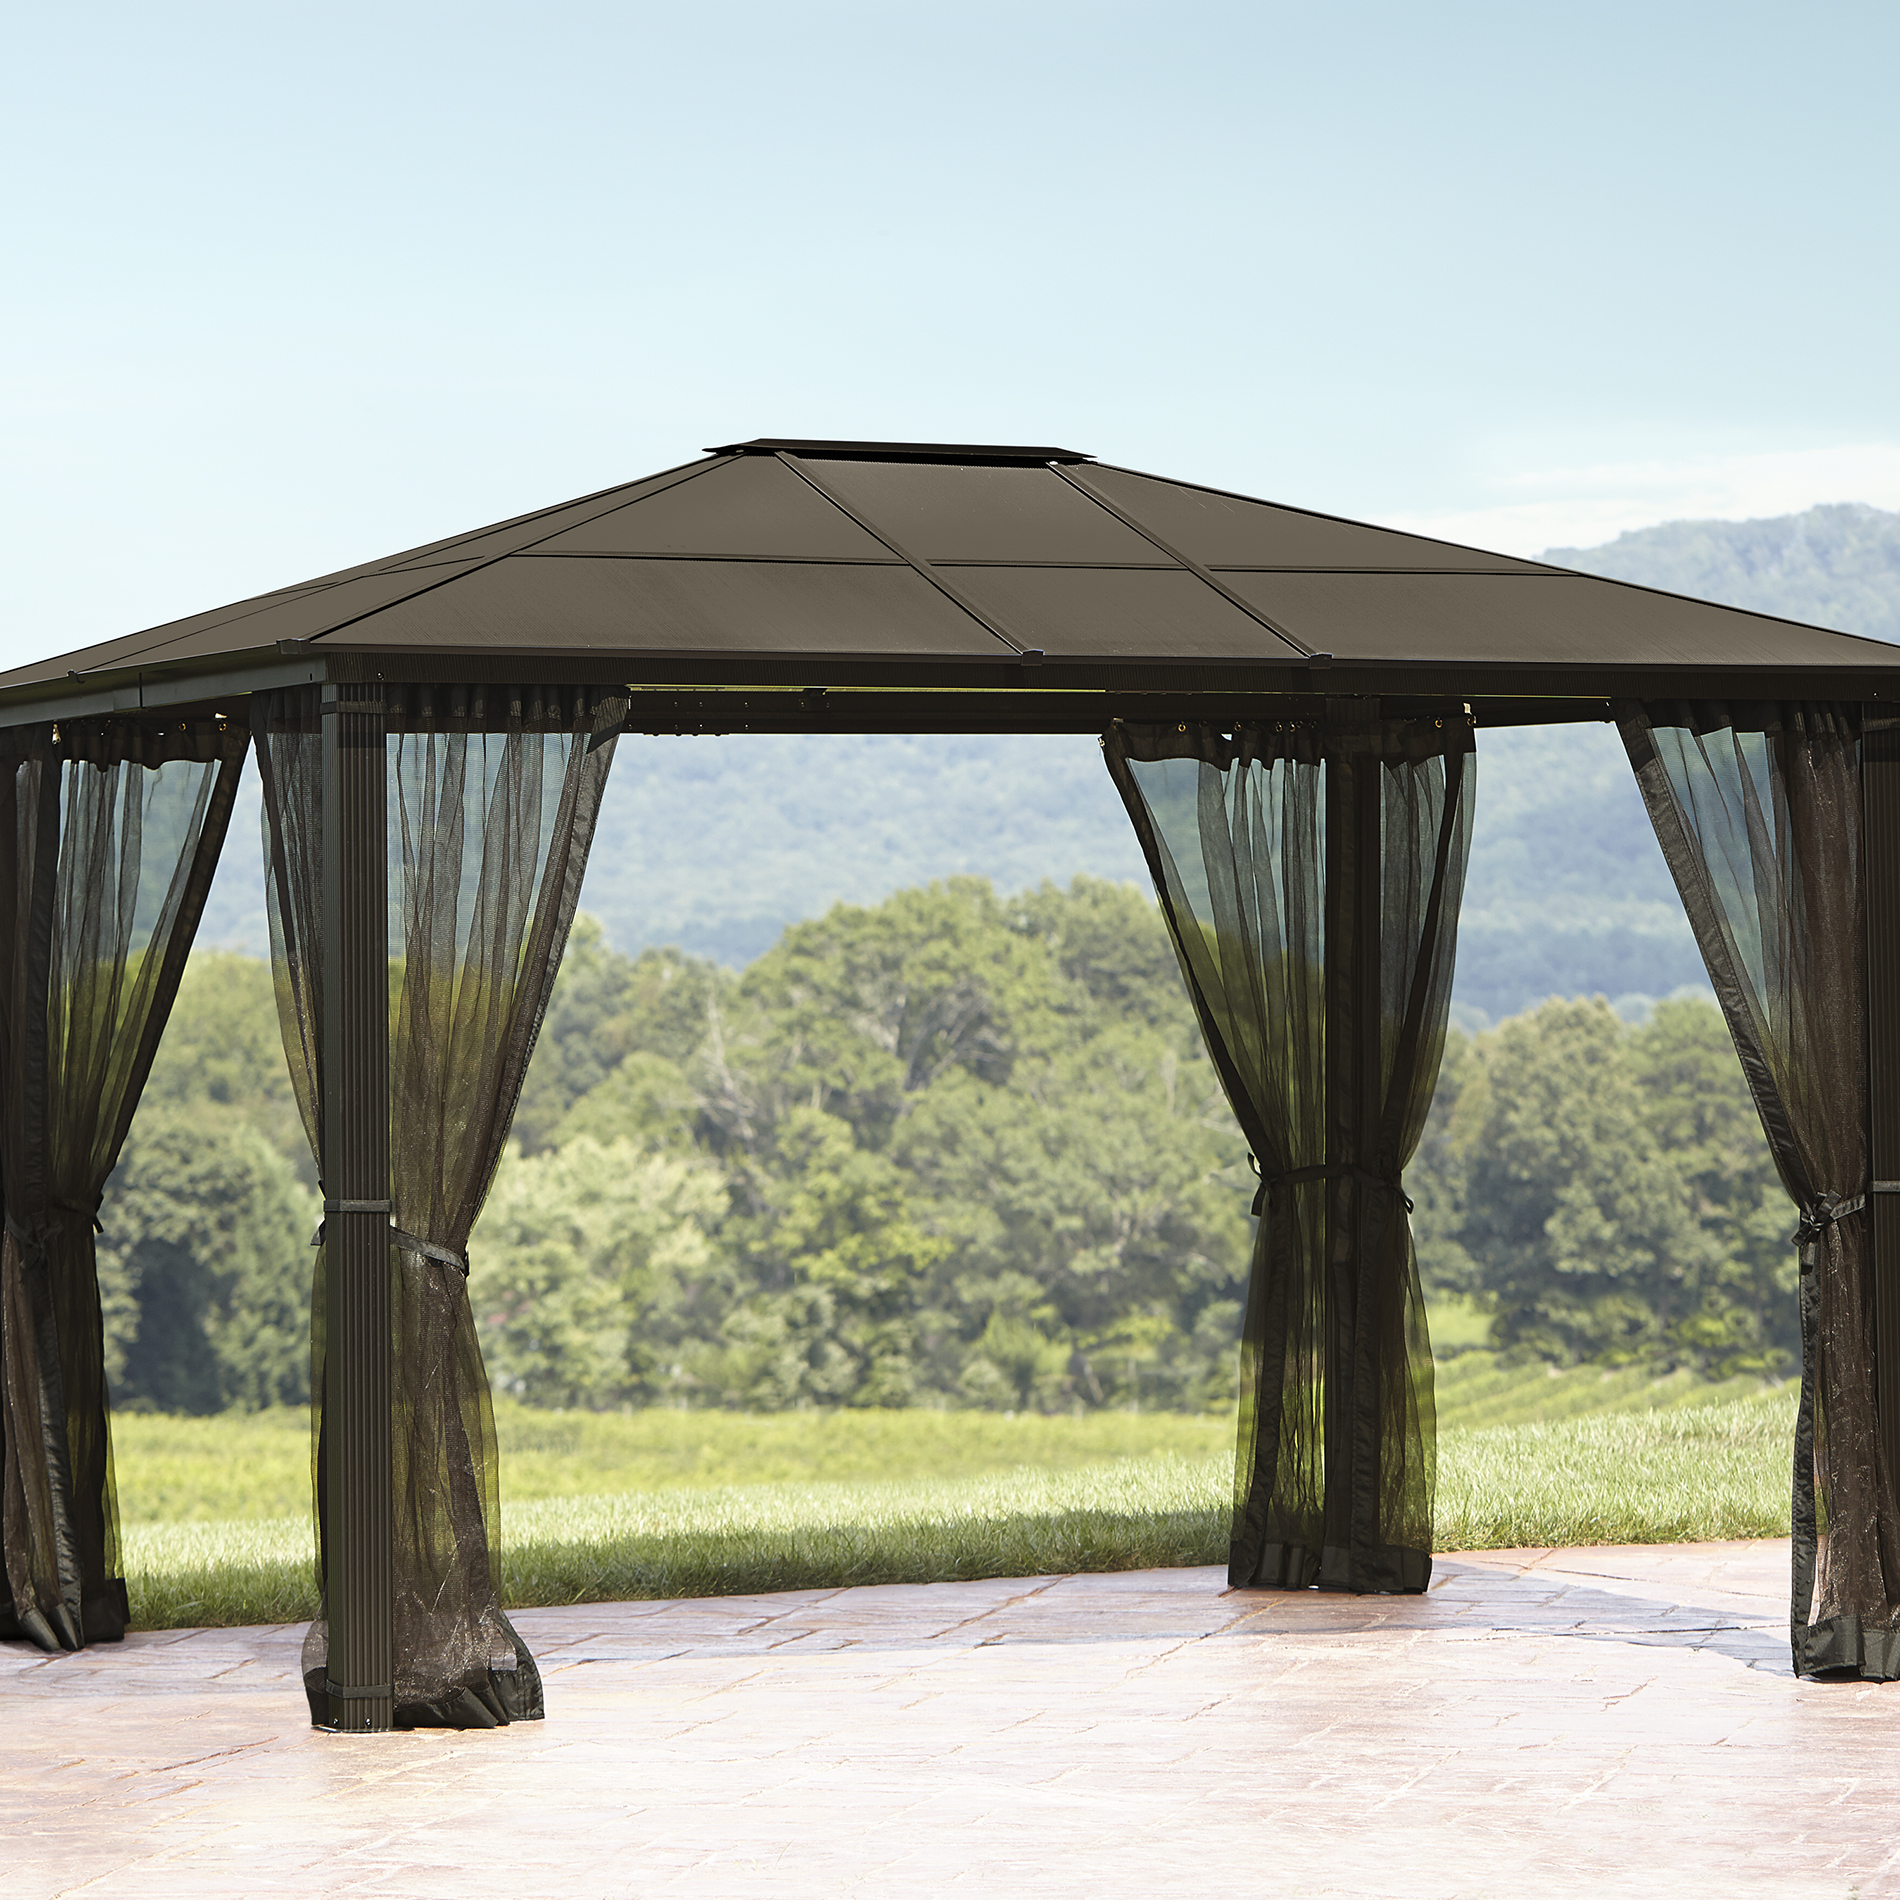 Screened Gazebo | Screen Tent Gazebo | Screened Pergola & Ideas: Screened Gazebo | Screen Tent Gazebo | Screened Pergola